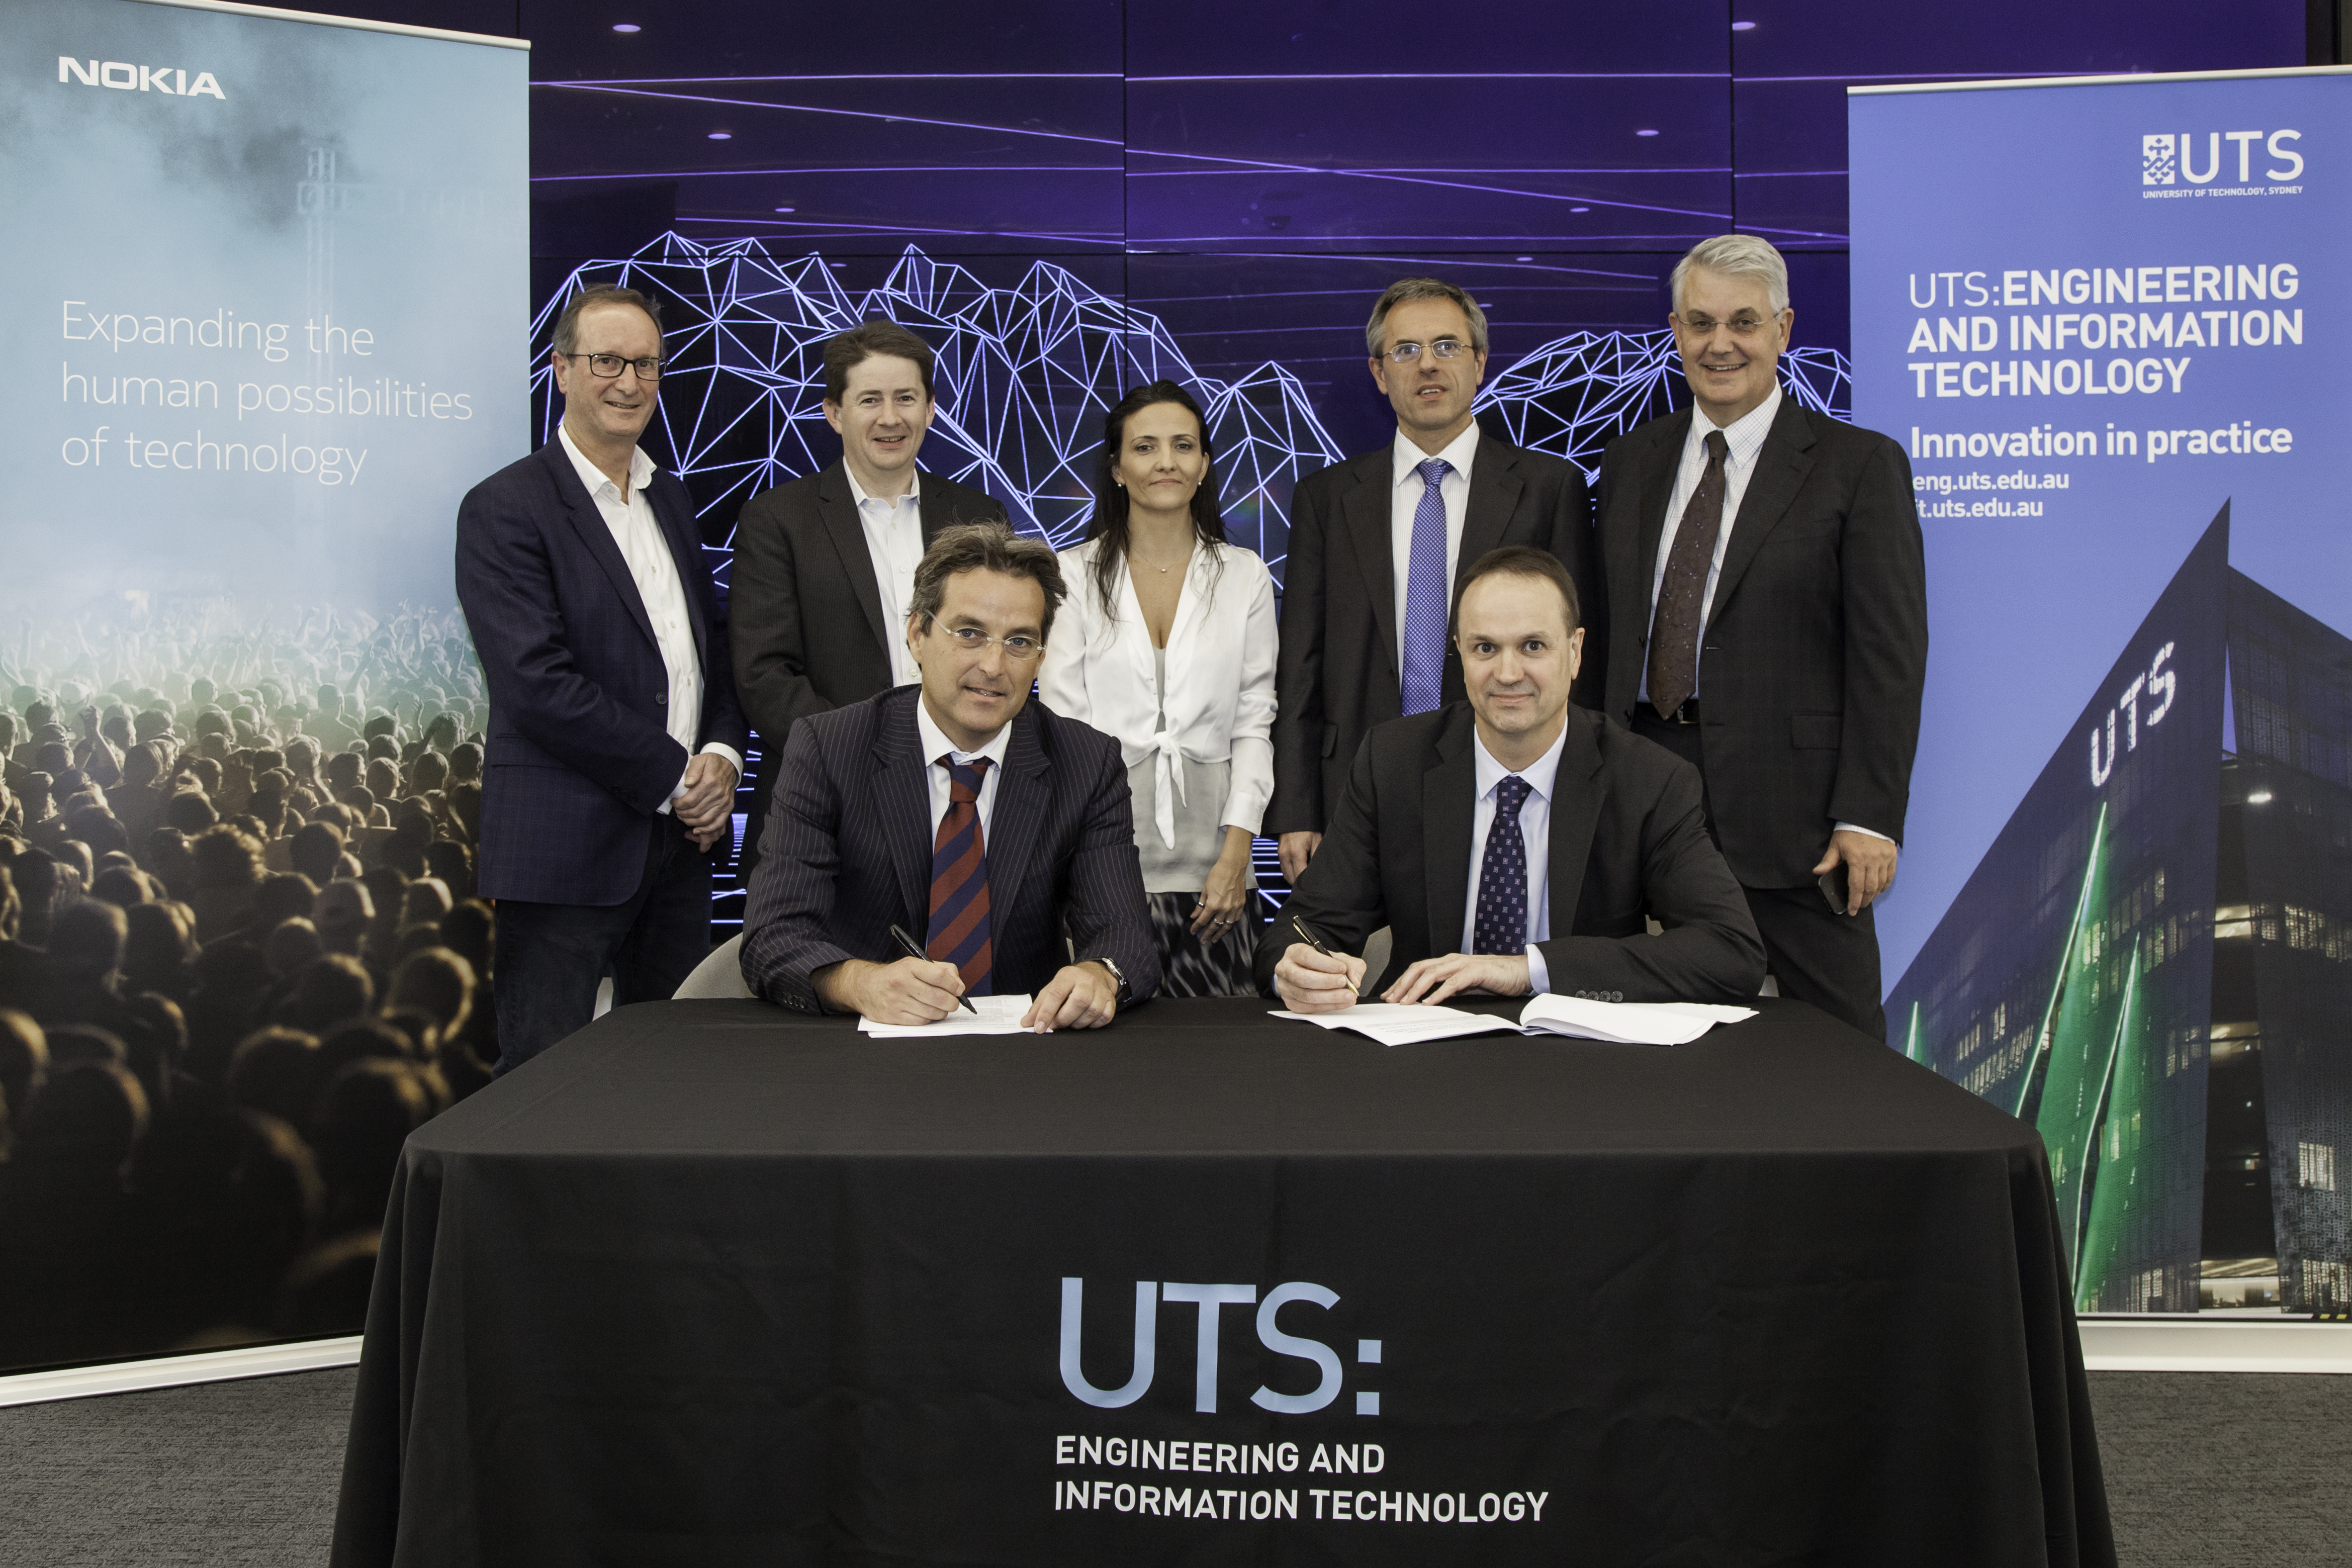 Signing the MoU between Nokia and UTS